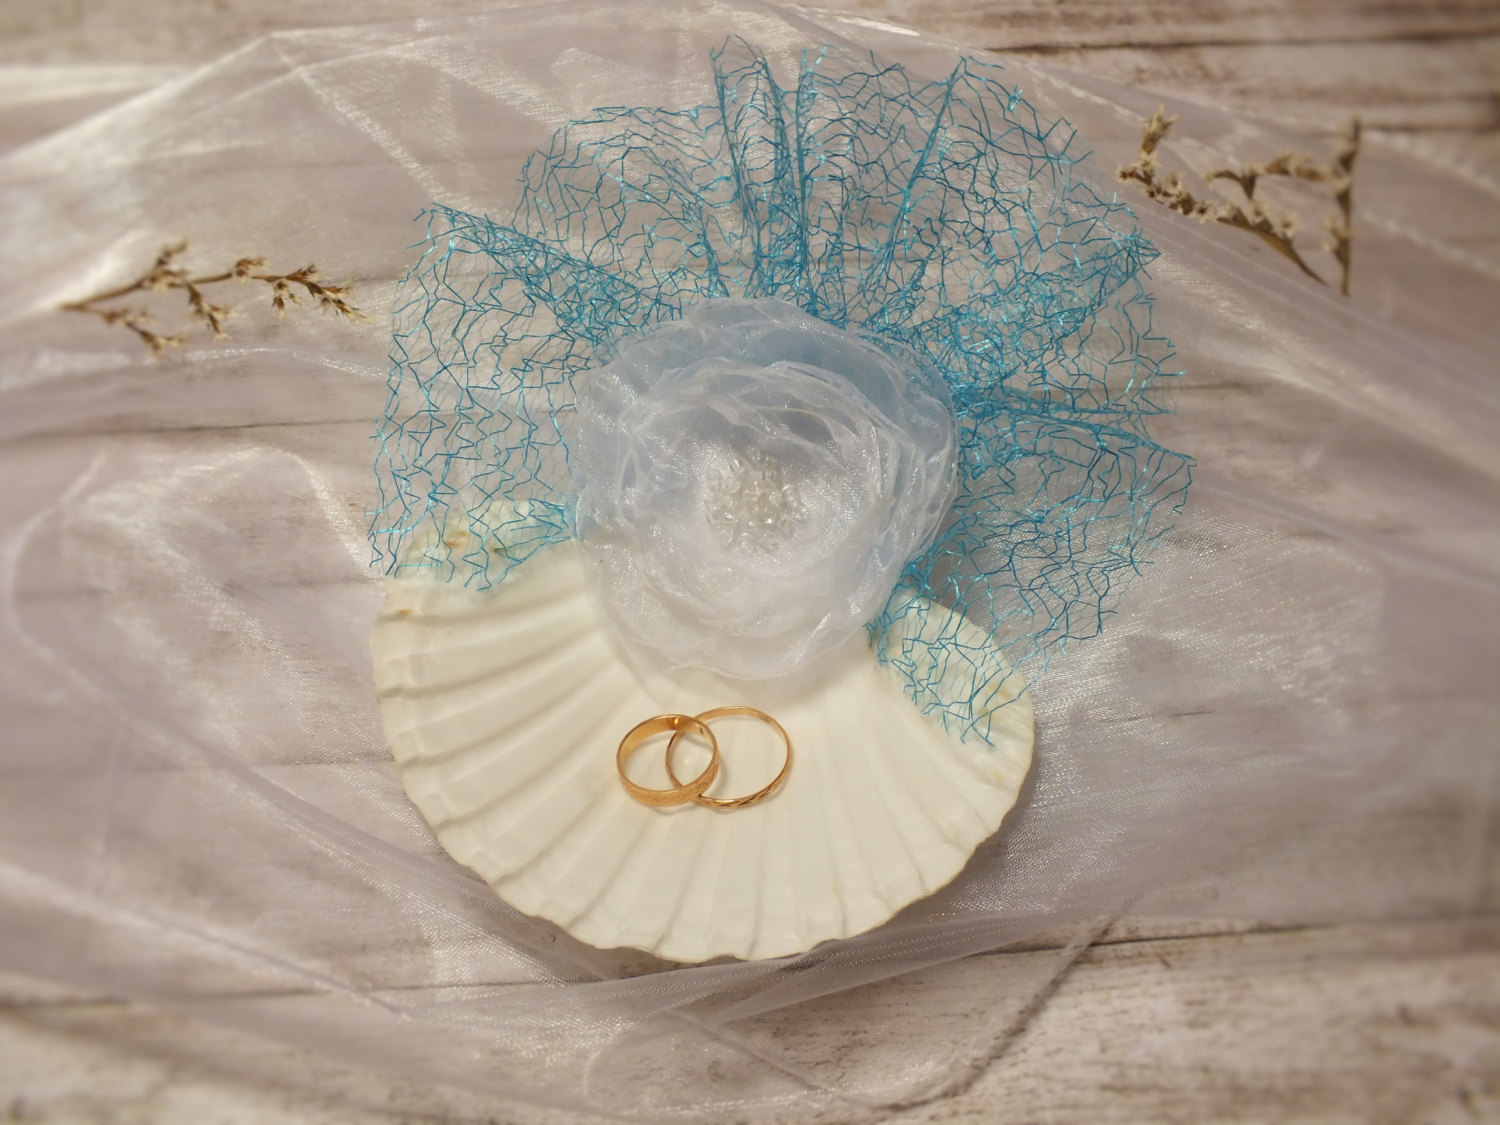 A creative jewelry ring holder for a wedding, made from natural seashell and decorated with an organza flower.